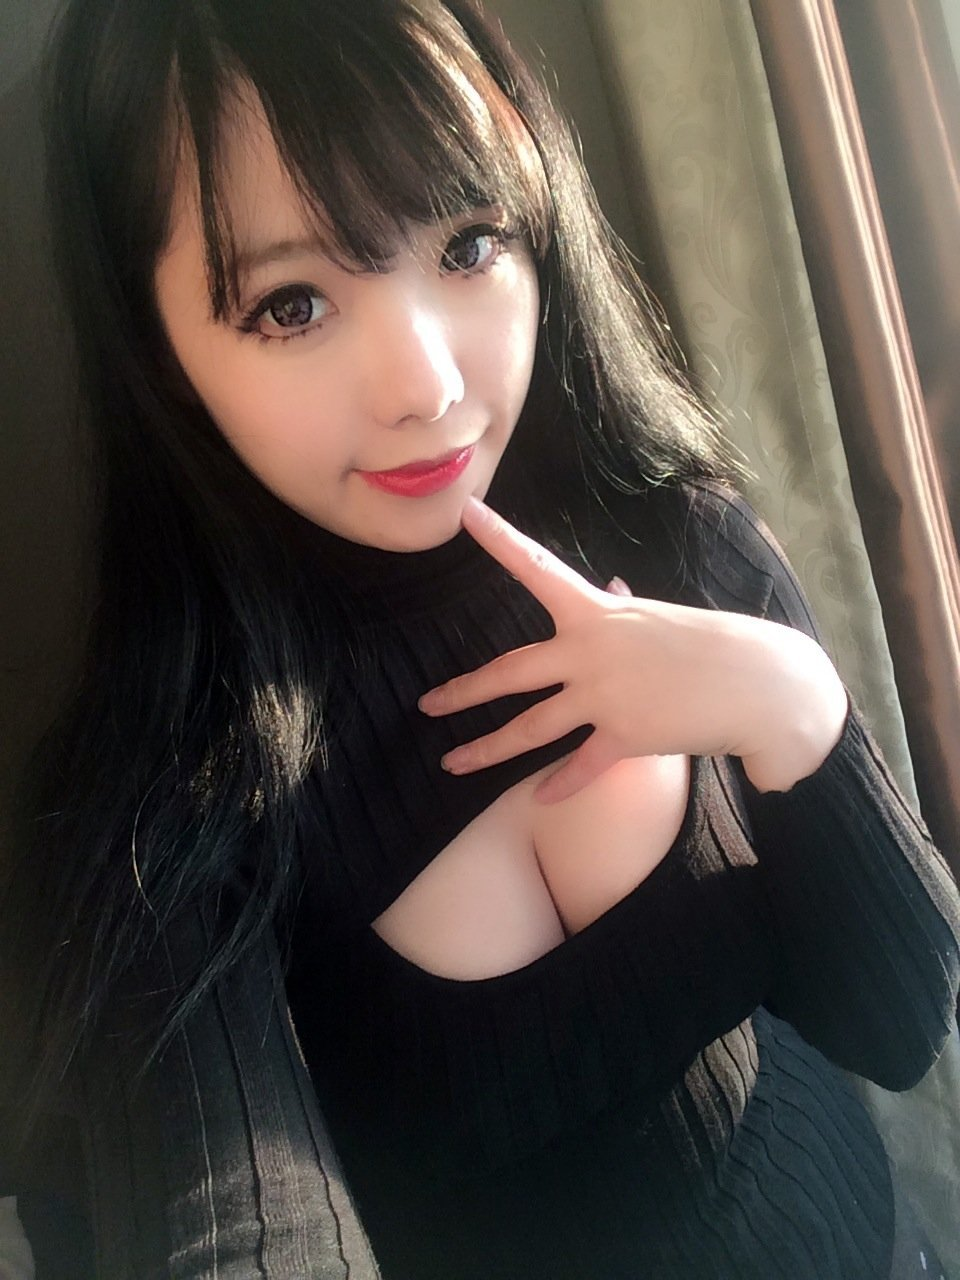 [40% OFF] Sexy Japanese Open Chest Cleavage Knitted Sweater - Neko Suki,